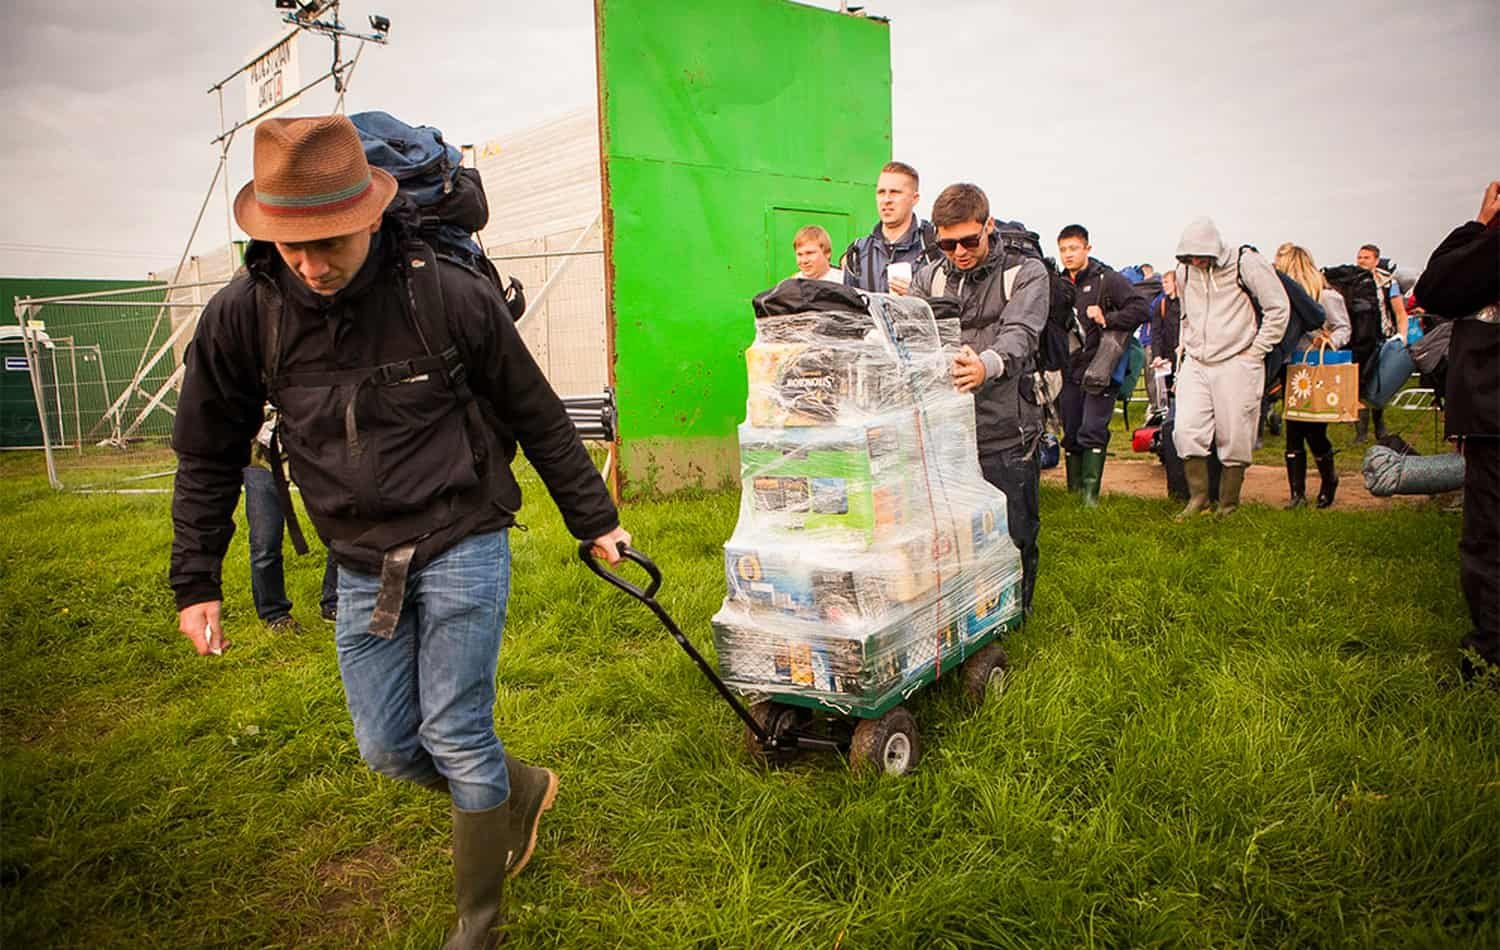 REDDIT FESTIVAL NEWS The ultimate Glastonbury Festival packing list: One List to Rule Them All